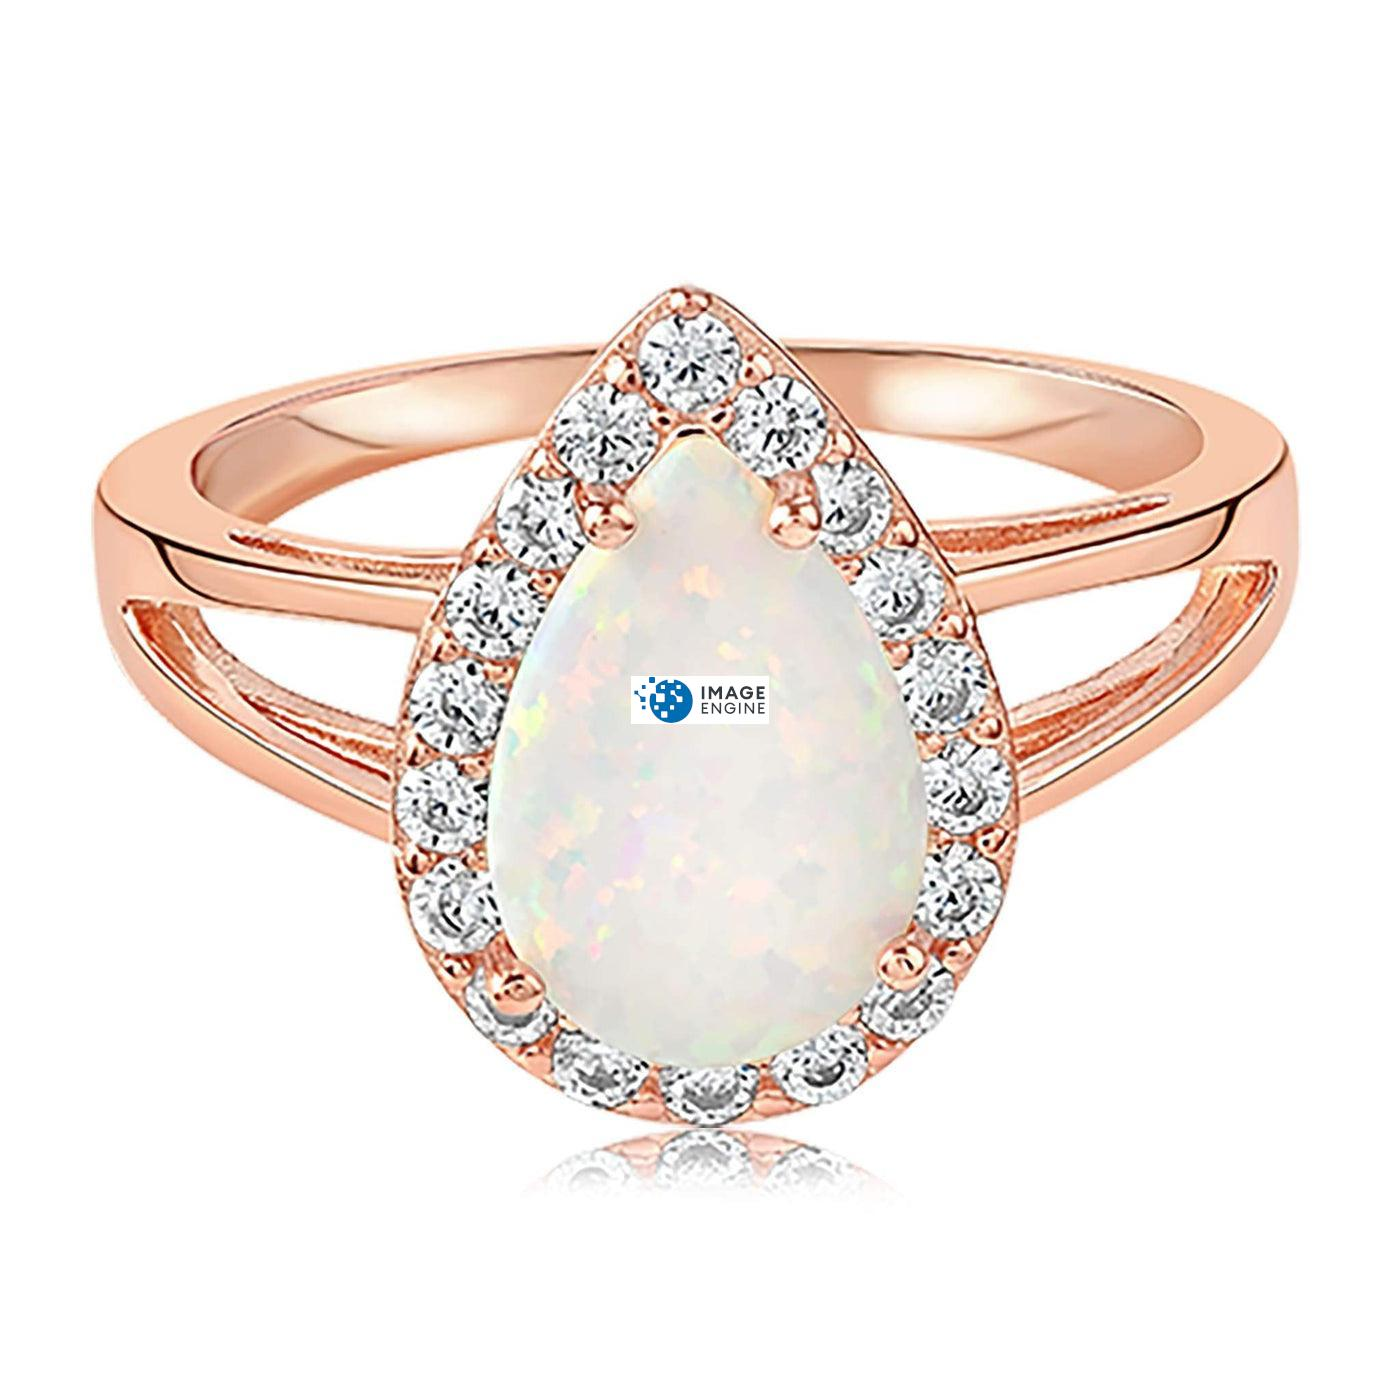 White Fire Champagne Opal Ring - Front View Facing Up - 18K Rose Gold Vermeil